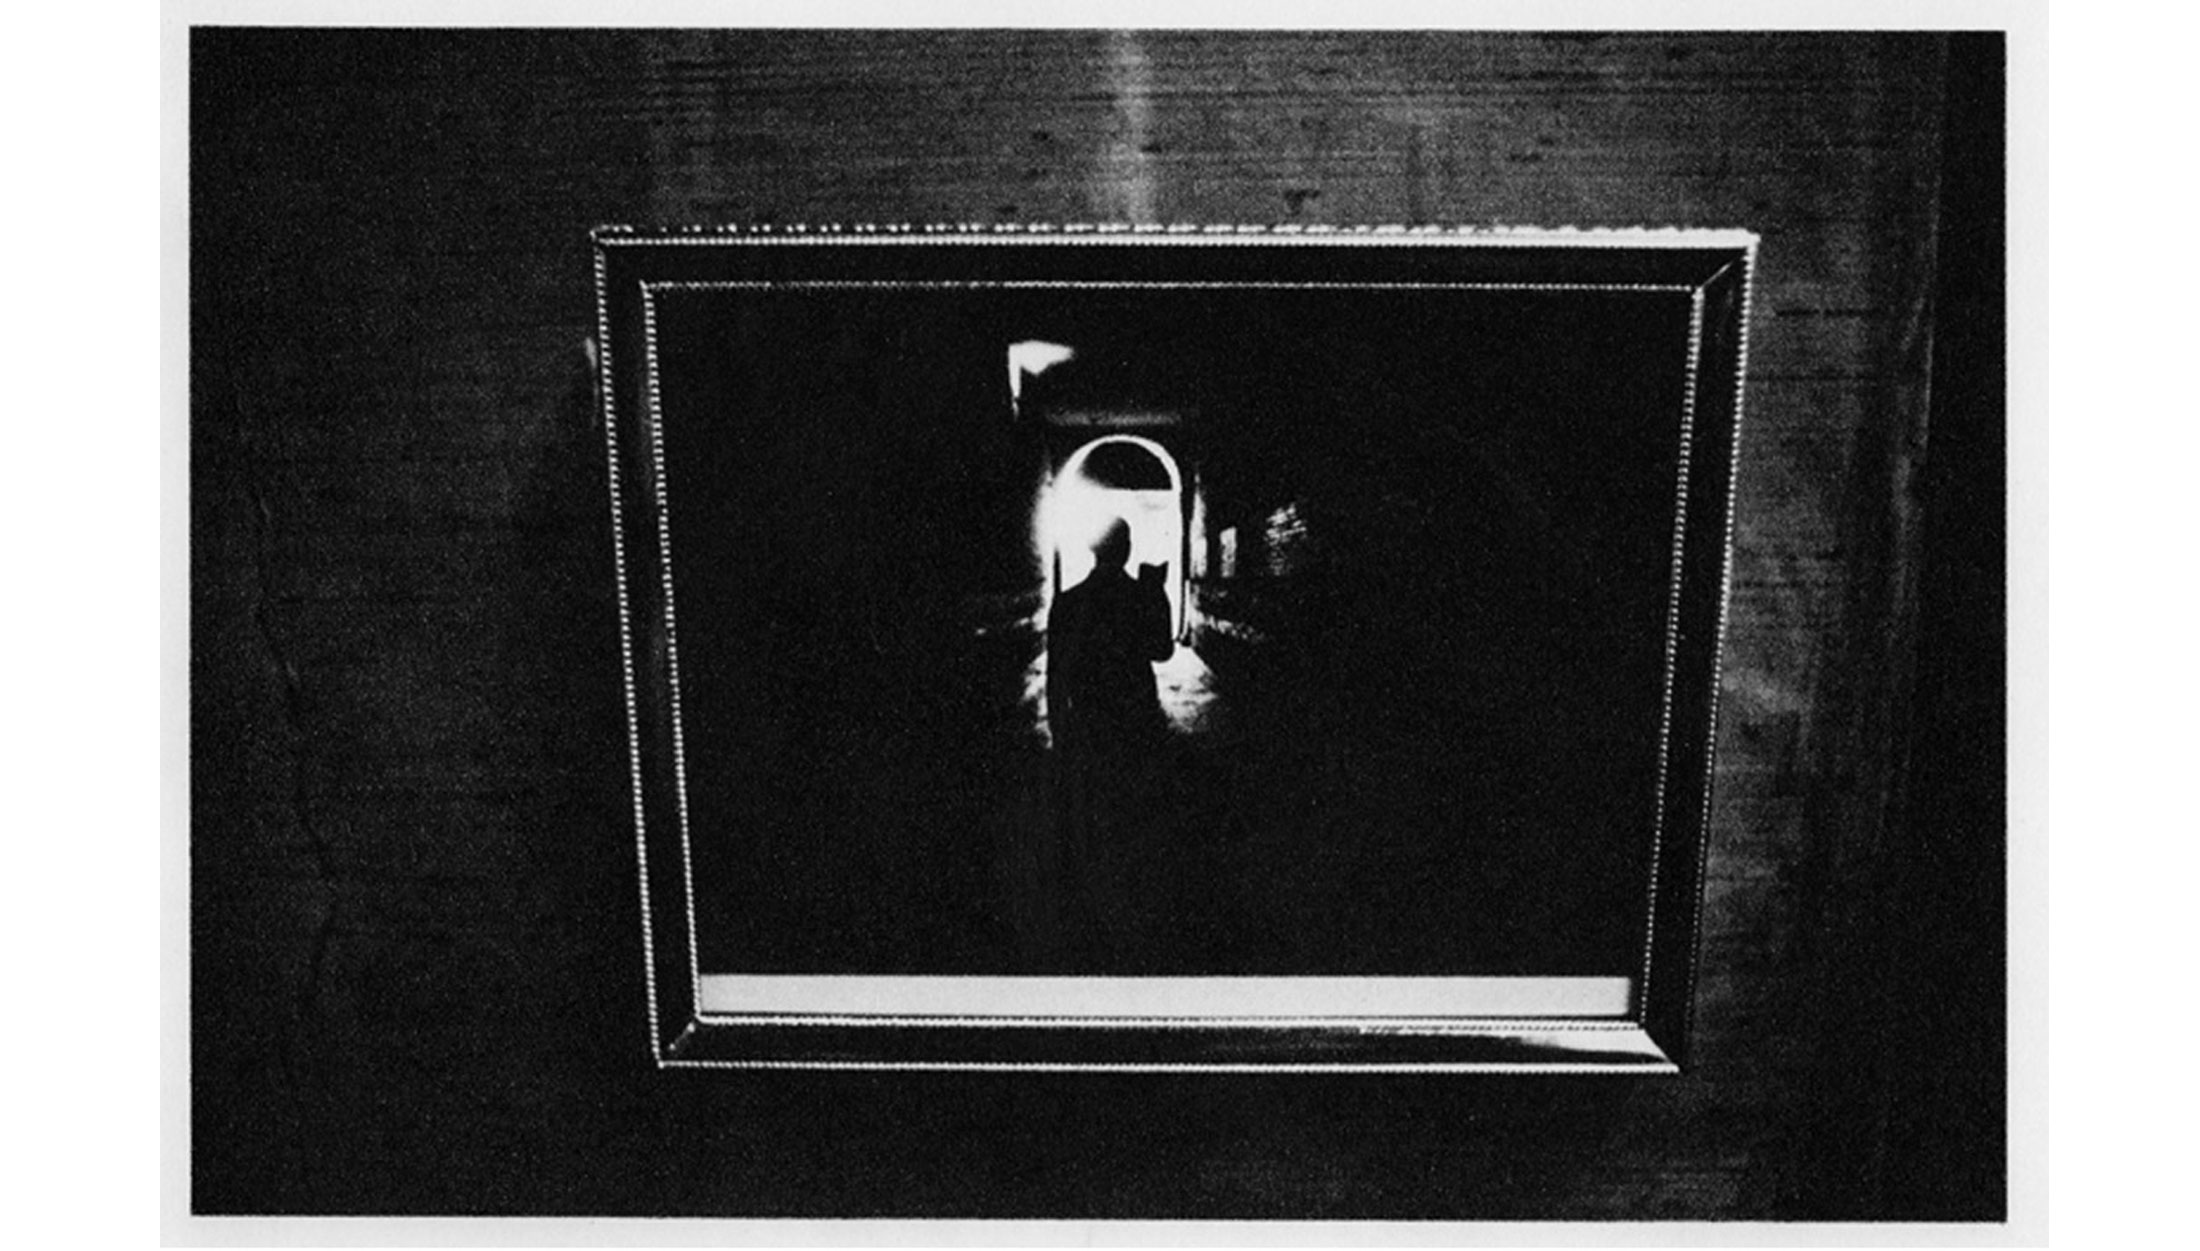 Duane-Michals-Things-are-Queer-Les-choses-sont-bizarres-1973-sequence-photo-07